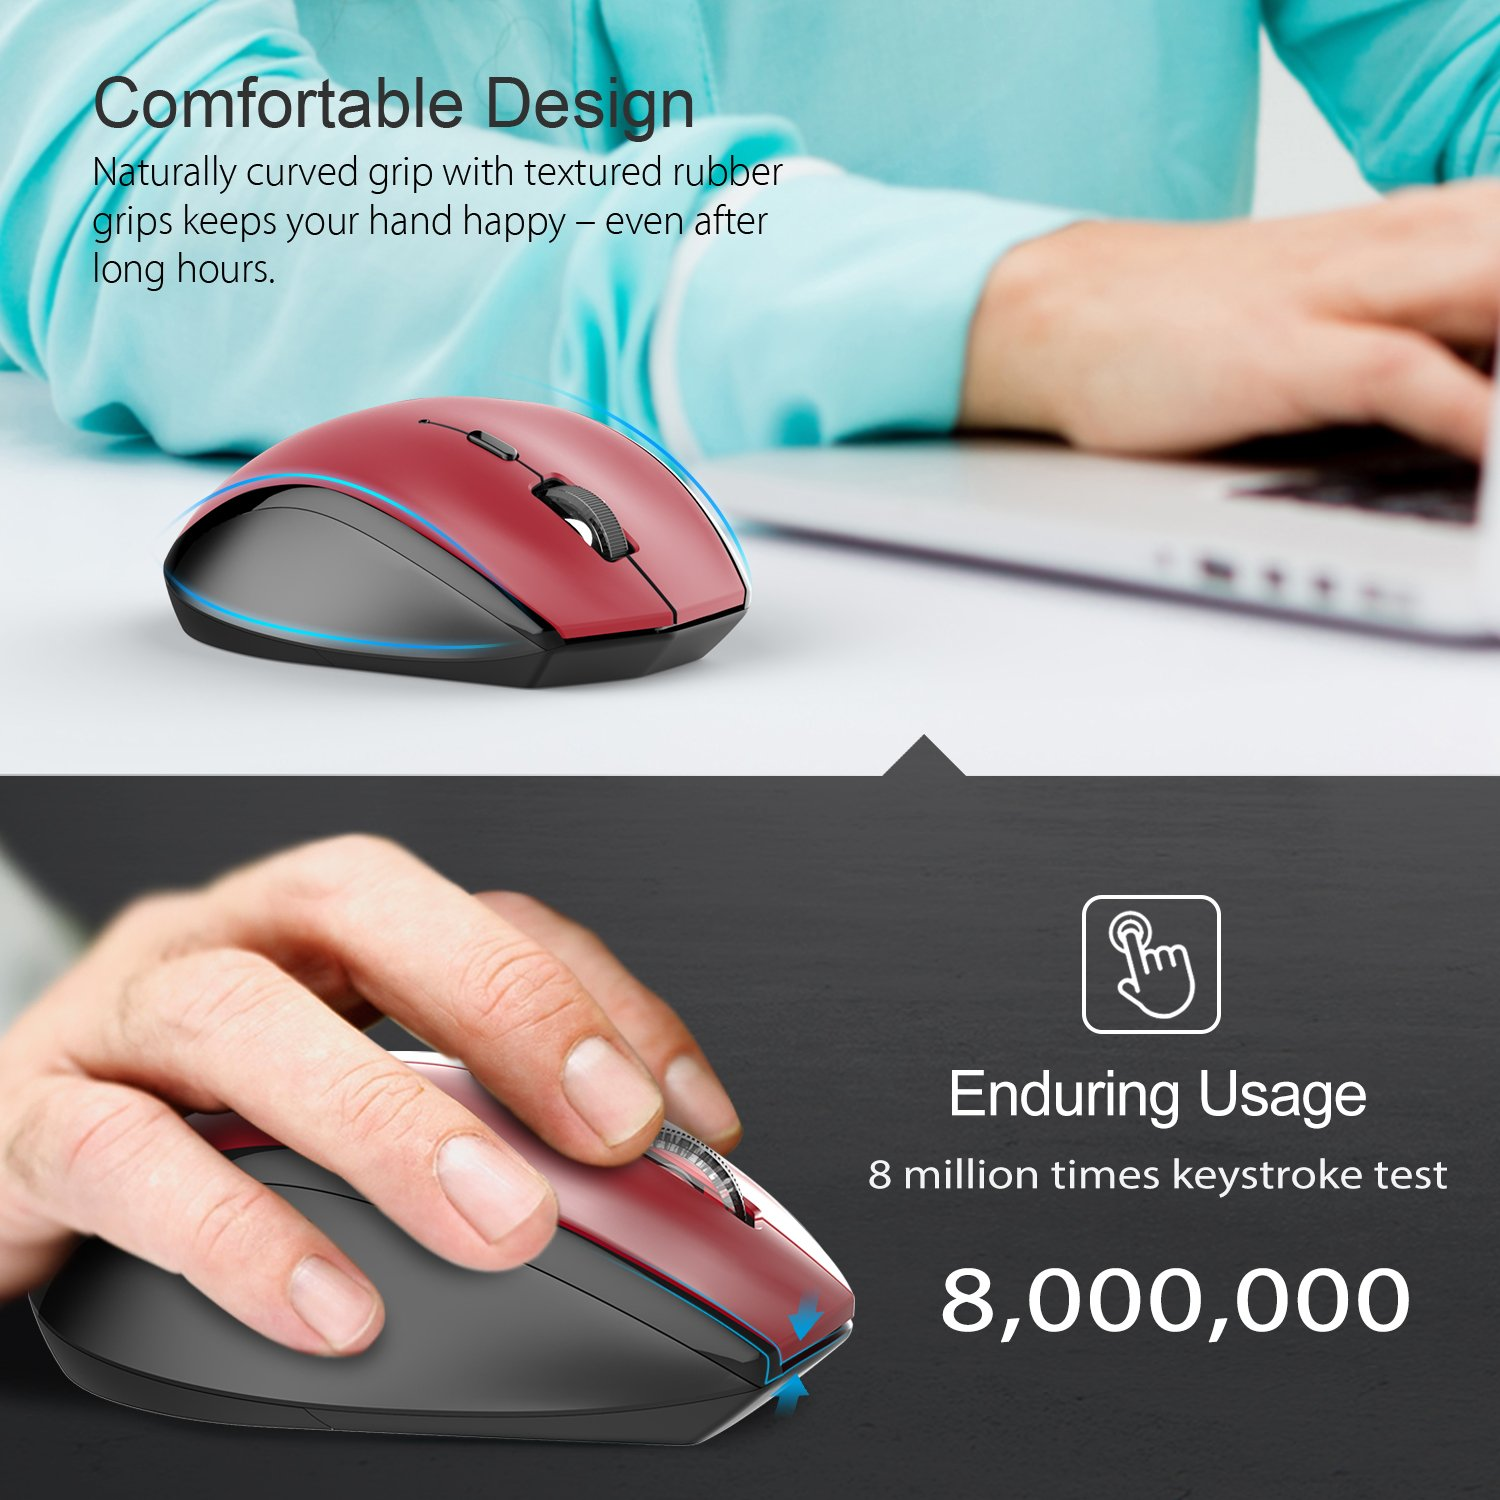 a662390163c Amazon.in: Buy Tecknet M002 Nano Cordless Optical Mouse (Red) Online at Low  Prices in India | Tecknet Reviews & Ratings